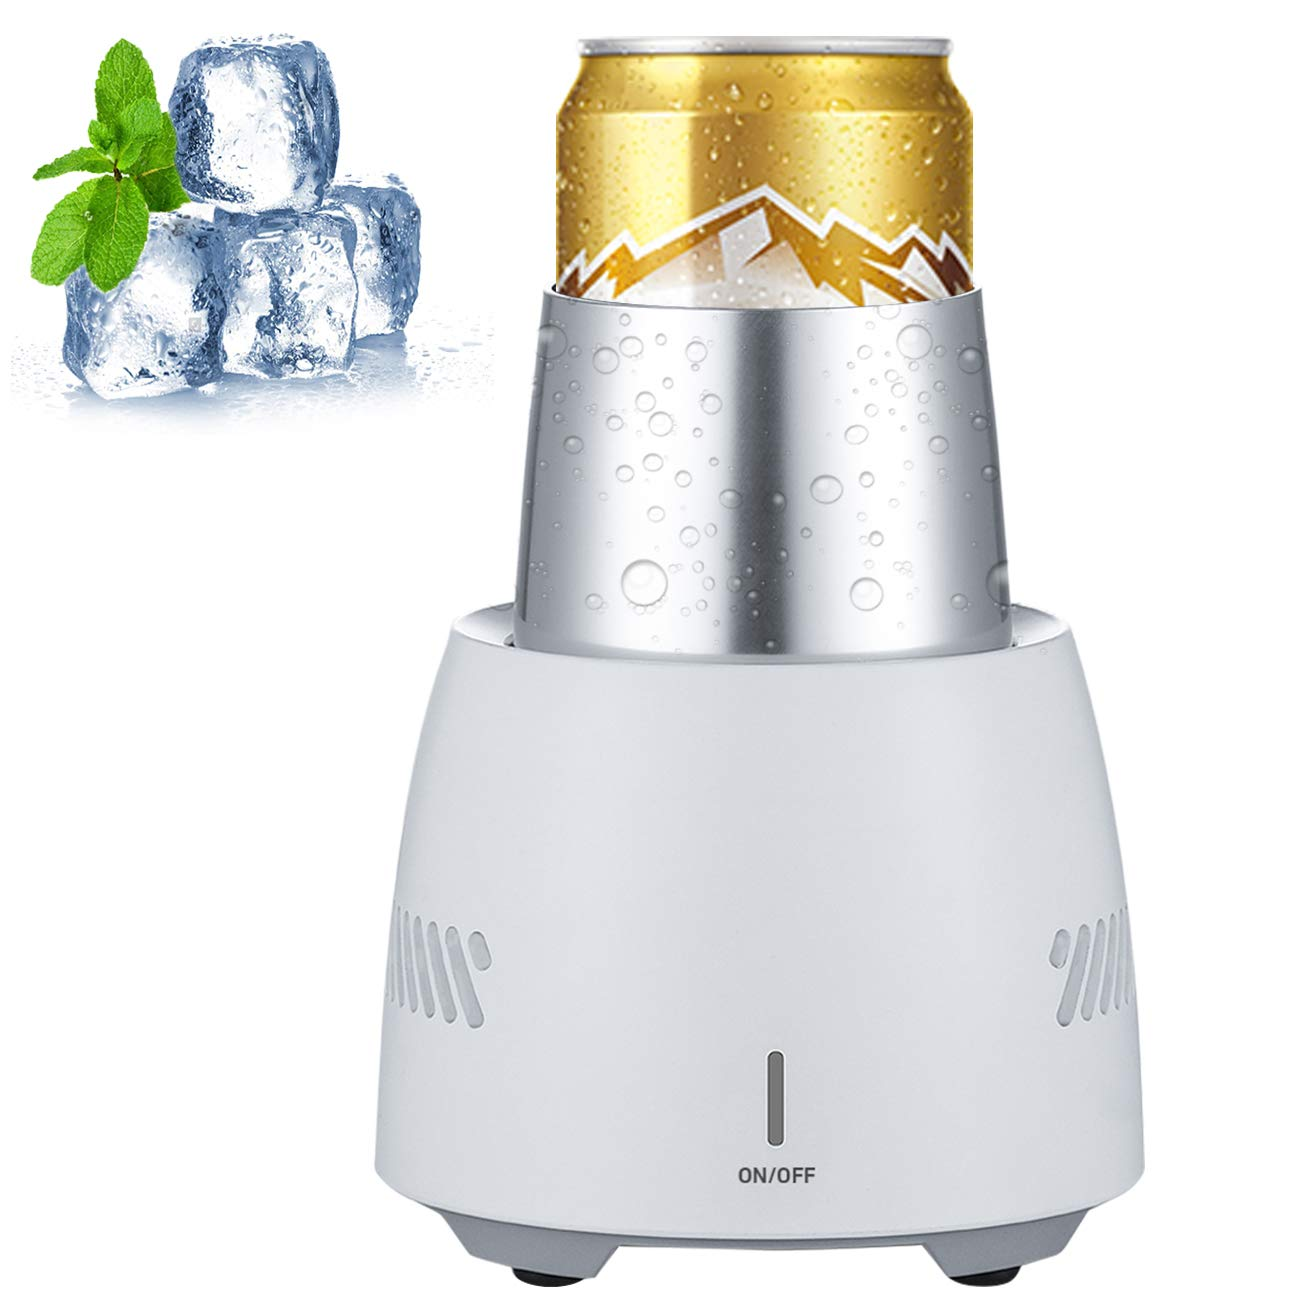 ETUOLIFE Fast Ice Cooling Cup Machine for Home Office - White